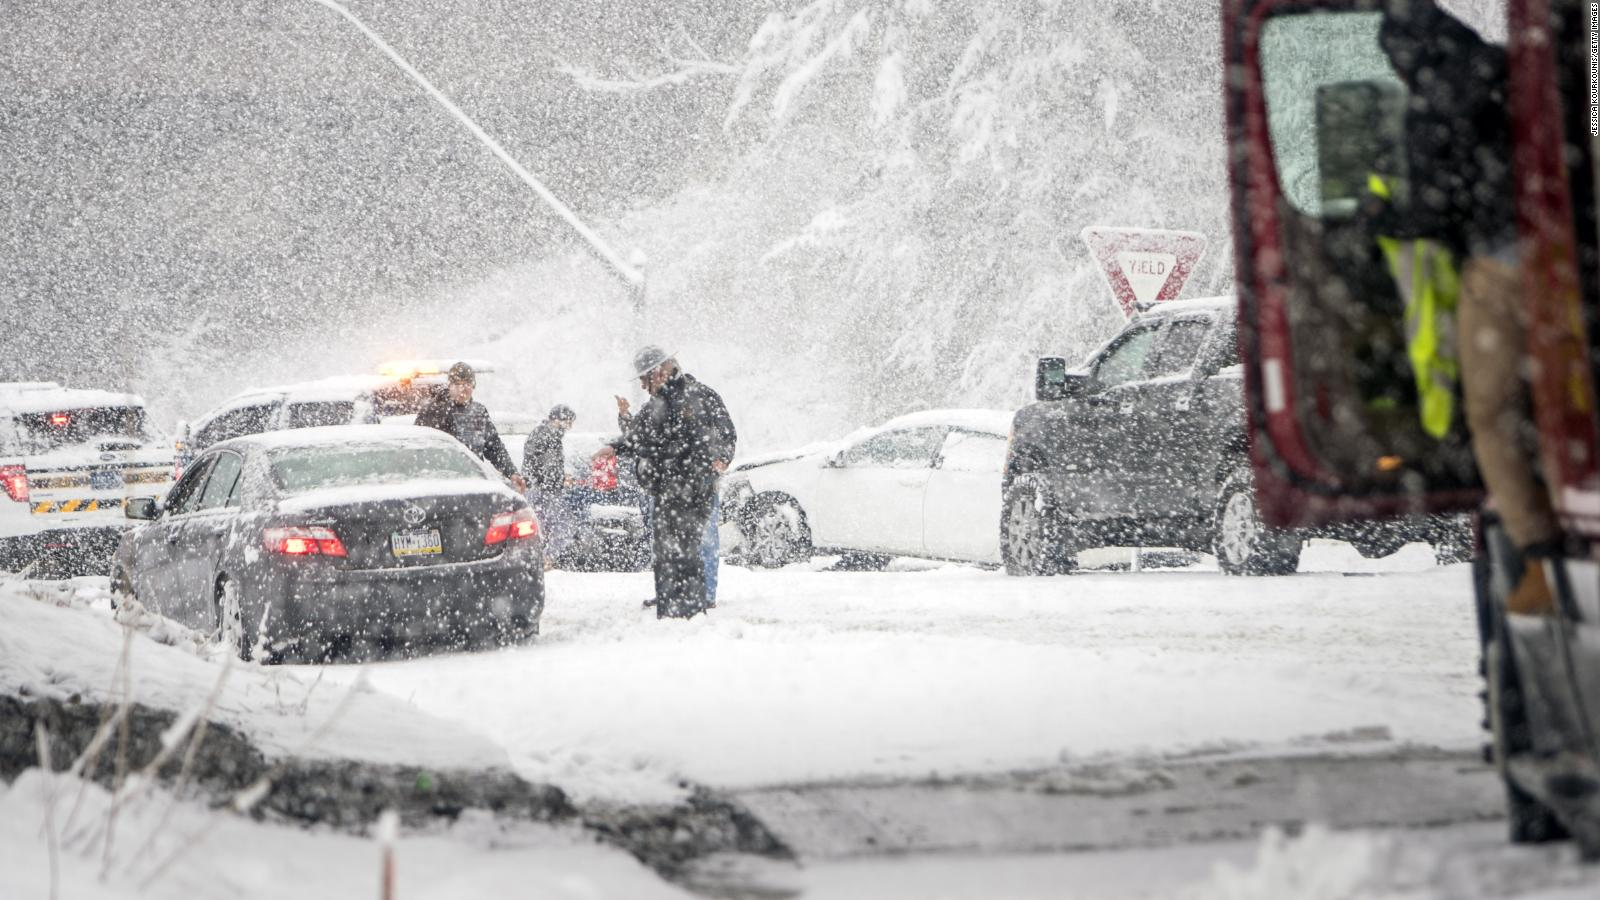 Snowstorm slams eastern US: 8 dead, power knocked out